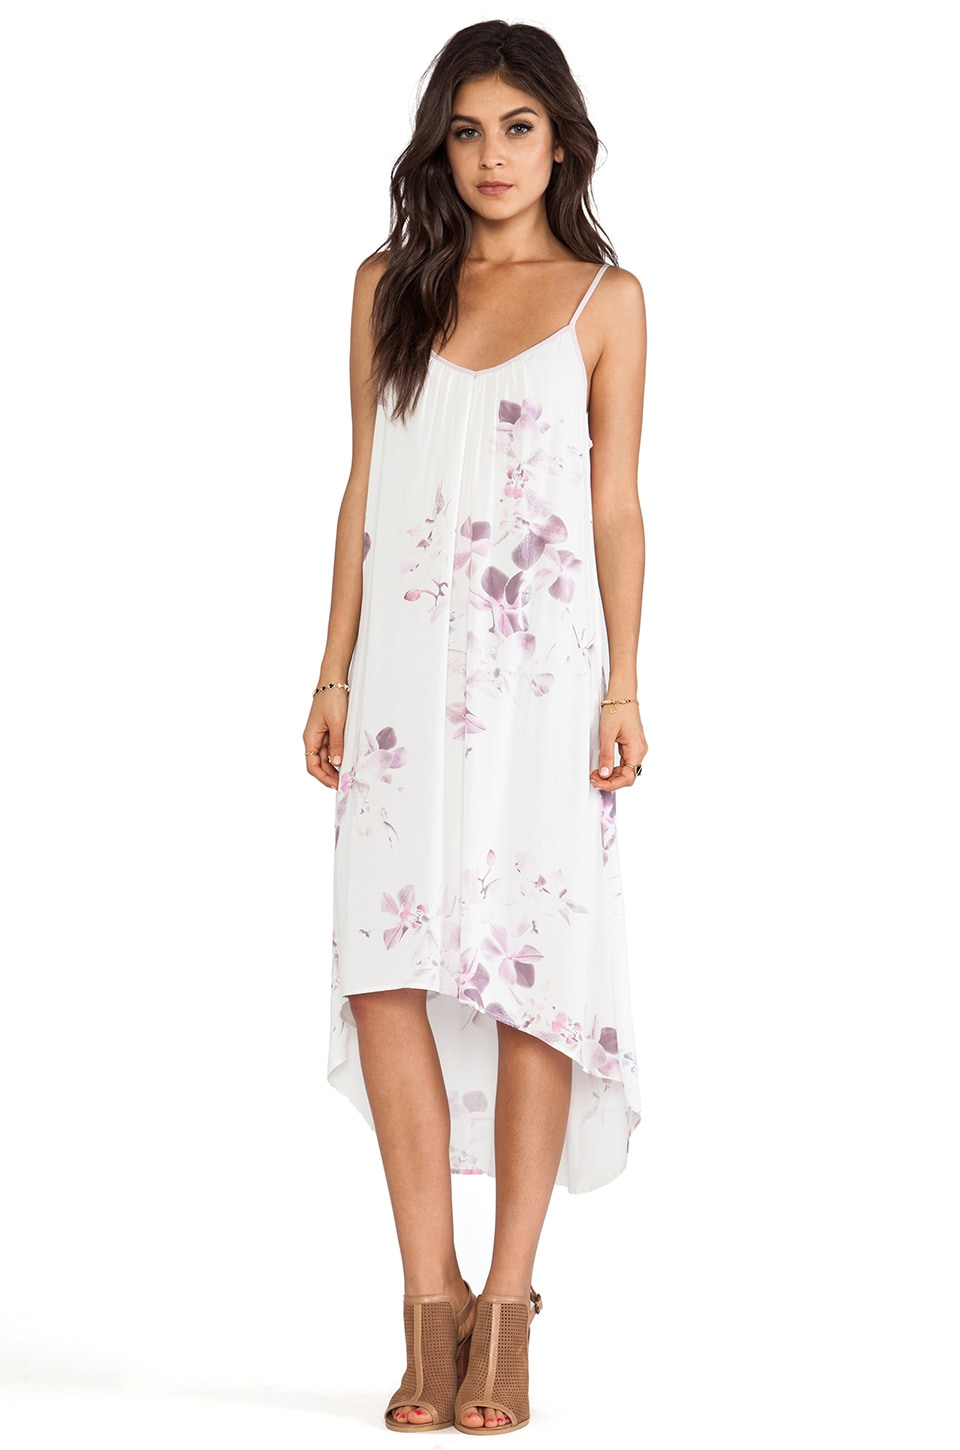 SAM&LAVI Sarita Dress in Orchid